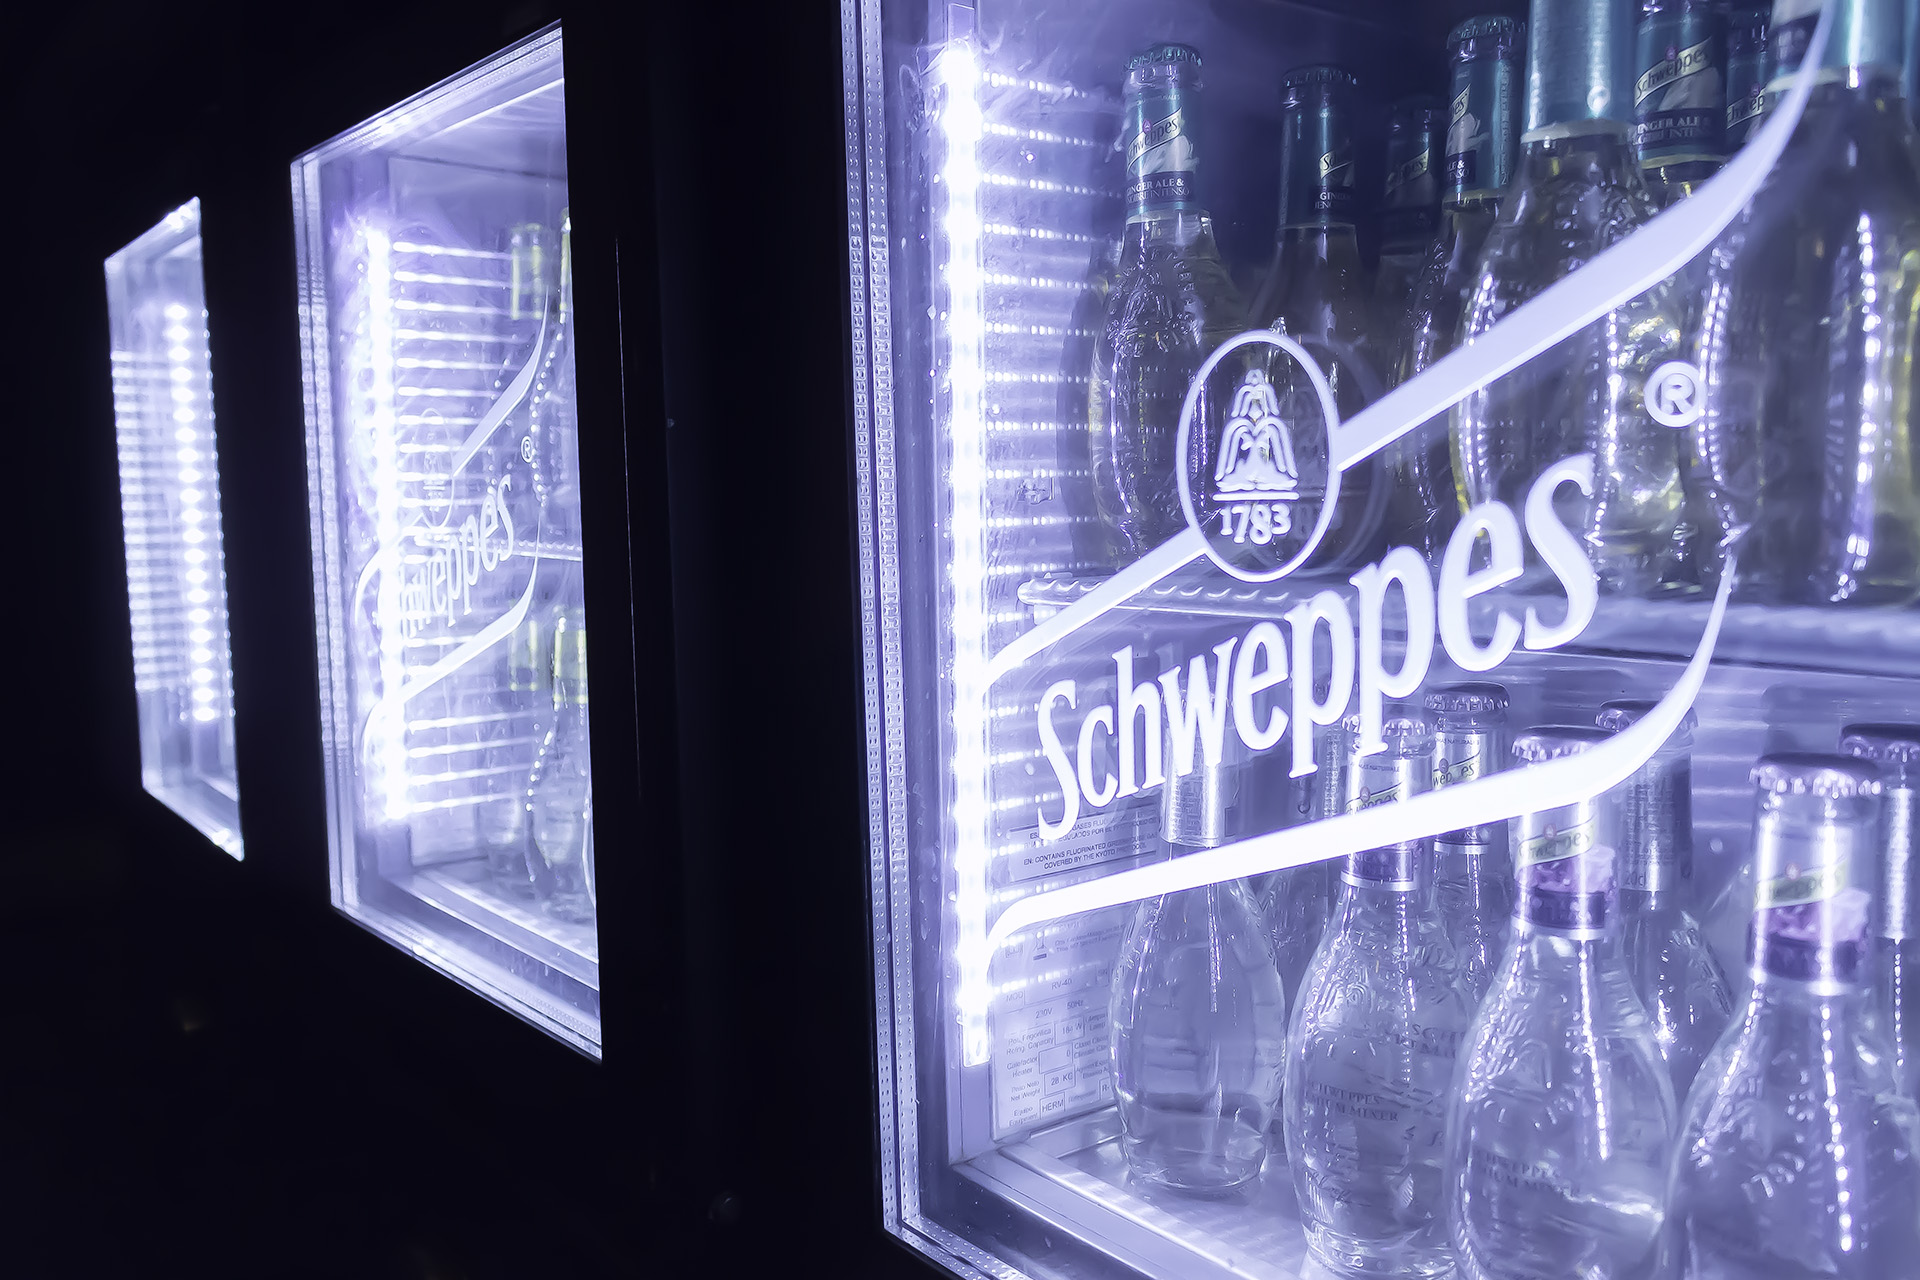 Back bar Schweppes